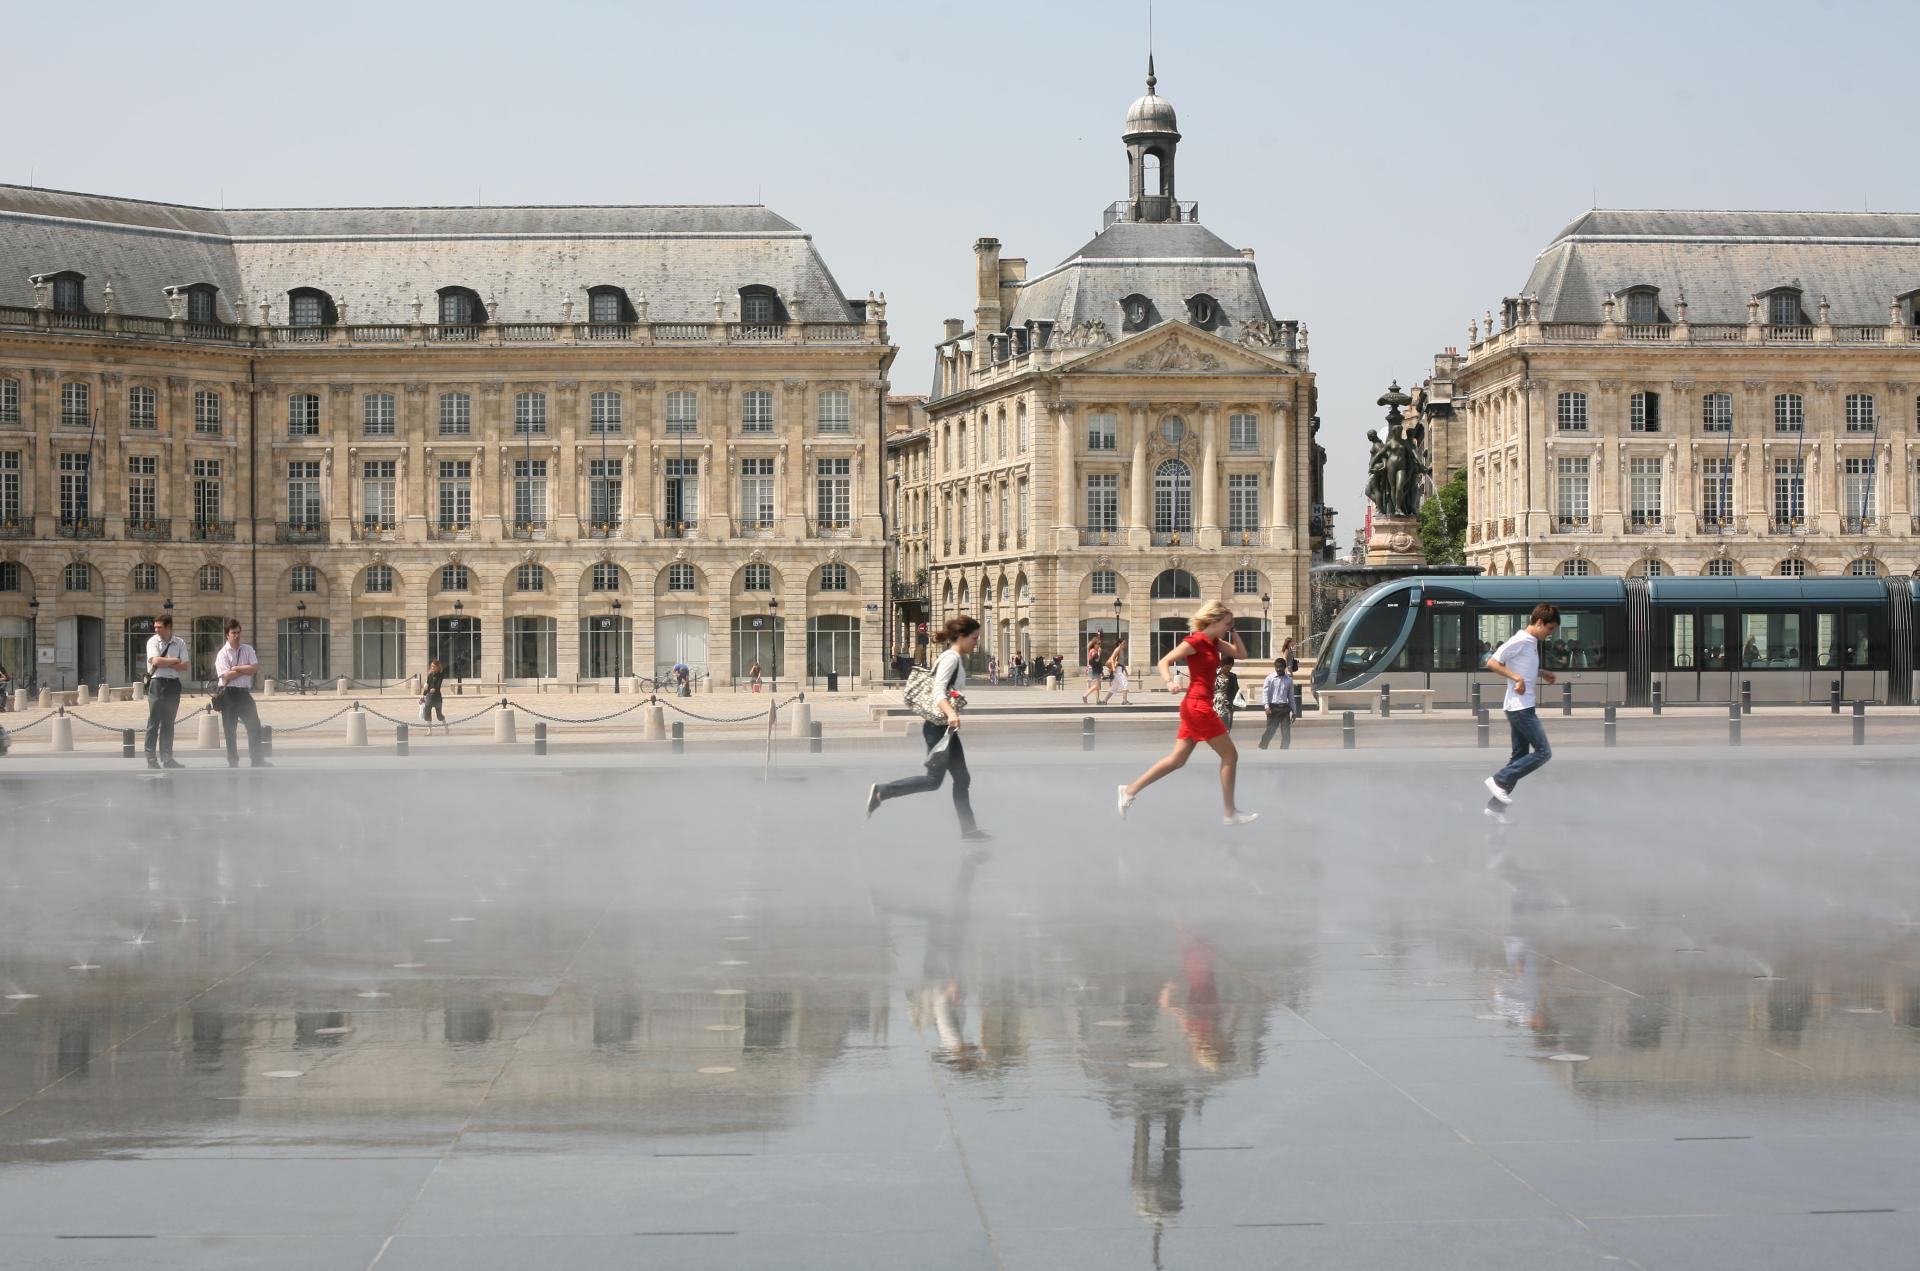 Place de la Bourse best cities for honeymoon in europe (1) Image by: best European cities for honeymoon blog.